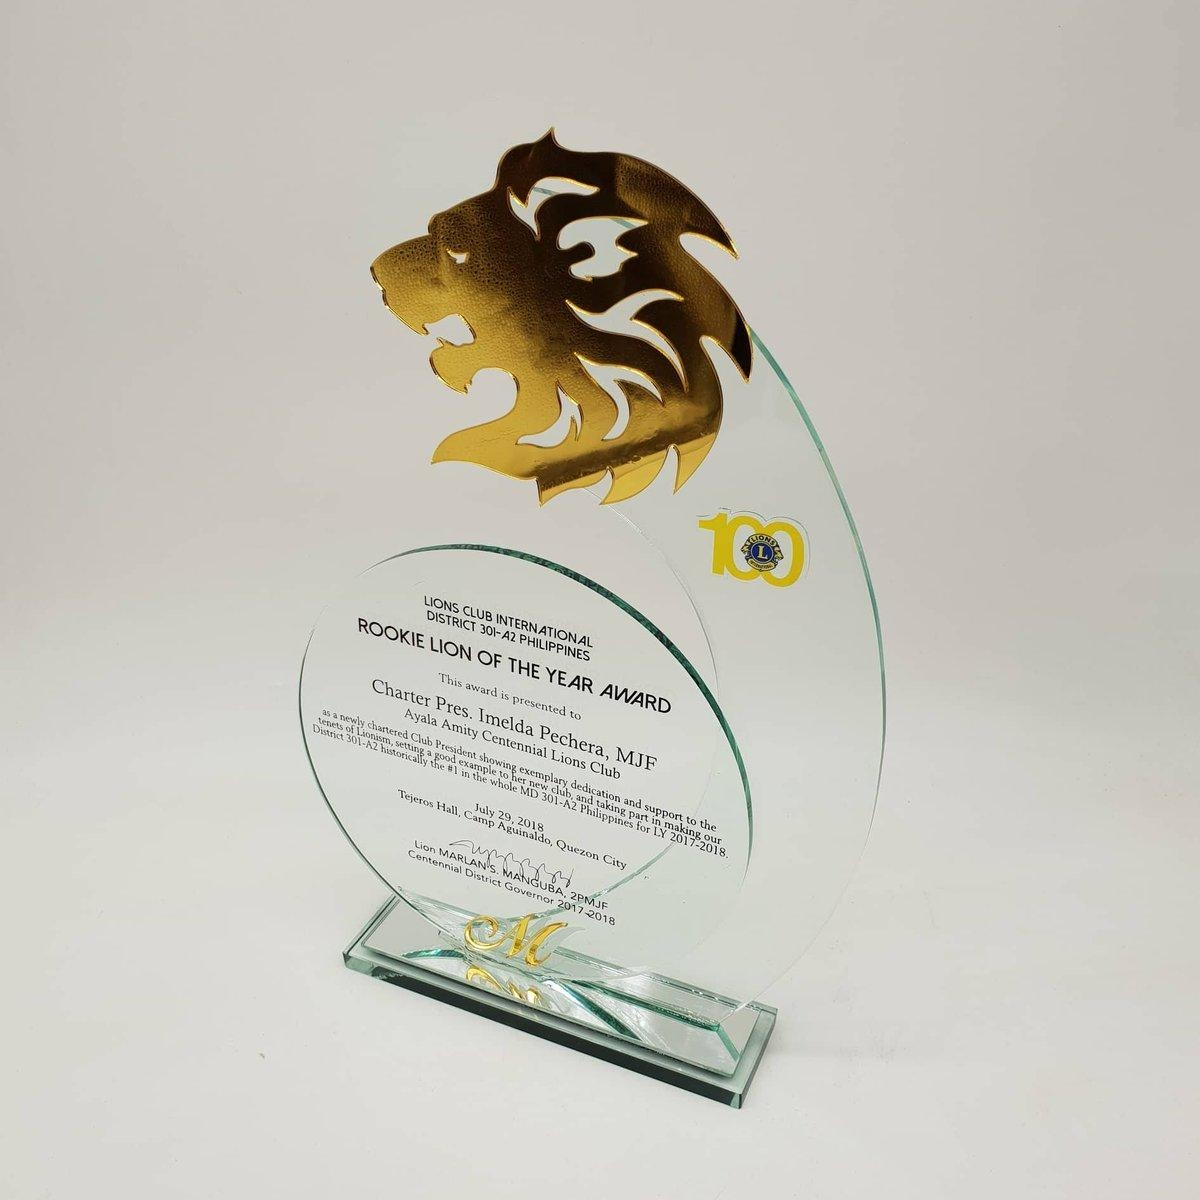 acrylic trophy,Acrylic Awards, Trophies FREE Engraving  Awards & Corporate Custom Acrylic Awards